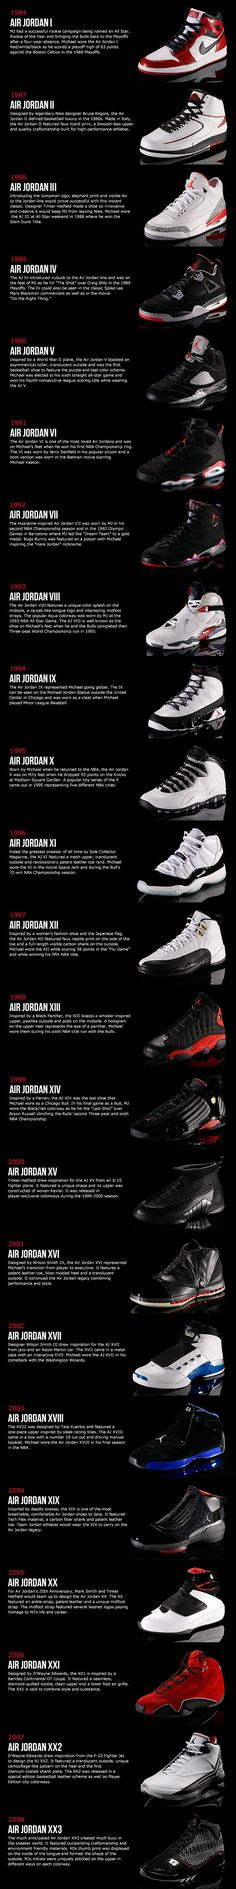 History of Air Jordan Shoes. Air Jordan is a brand of basketball footwear and athletic clothing produced by Nike and endorsed and created for Chicago Bulls basketball player Michael Jordan Aegis Gears Zapatos Air Jordan, Air Jordan Sneakers, Jordans Sneakers, Jordan Shoes For Men, Shoes Men, Shoes Sneakers, Jordans Outfit For Men, Jordan 11 Outfit, Michael Jordan Shoes